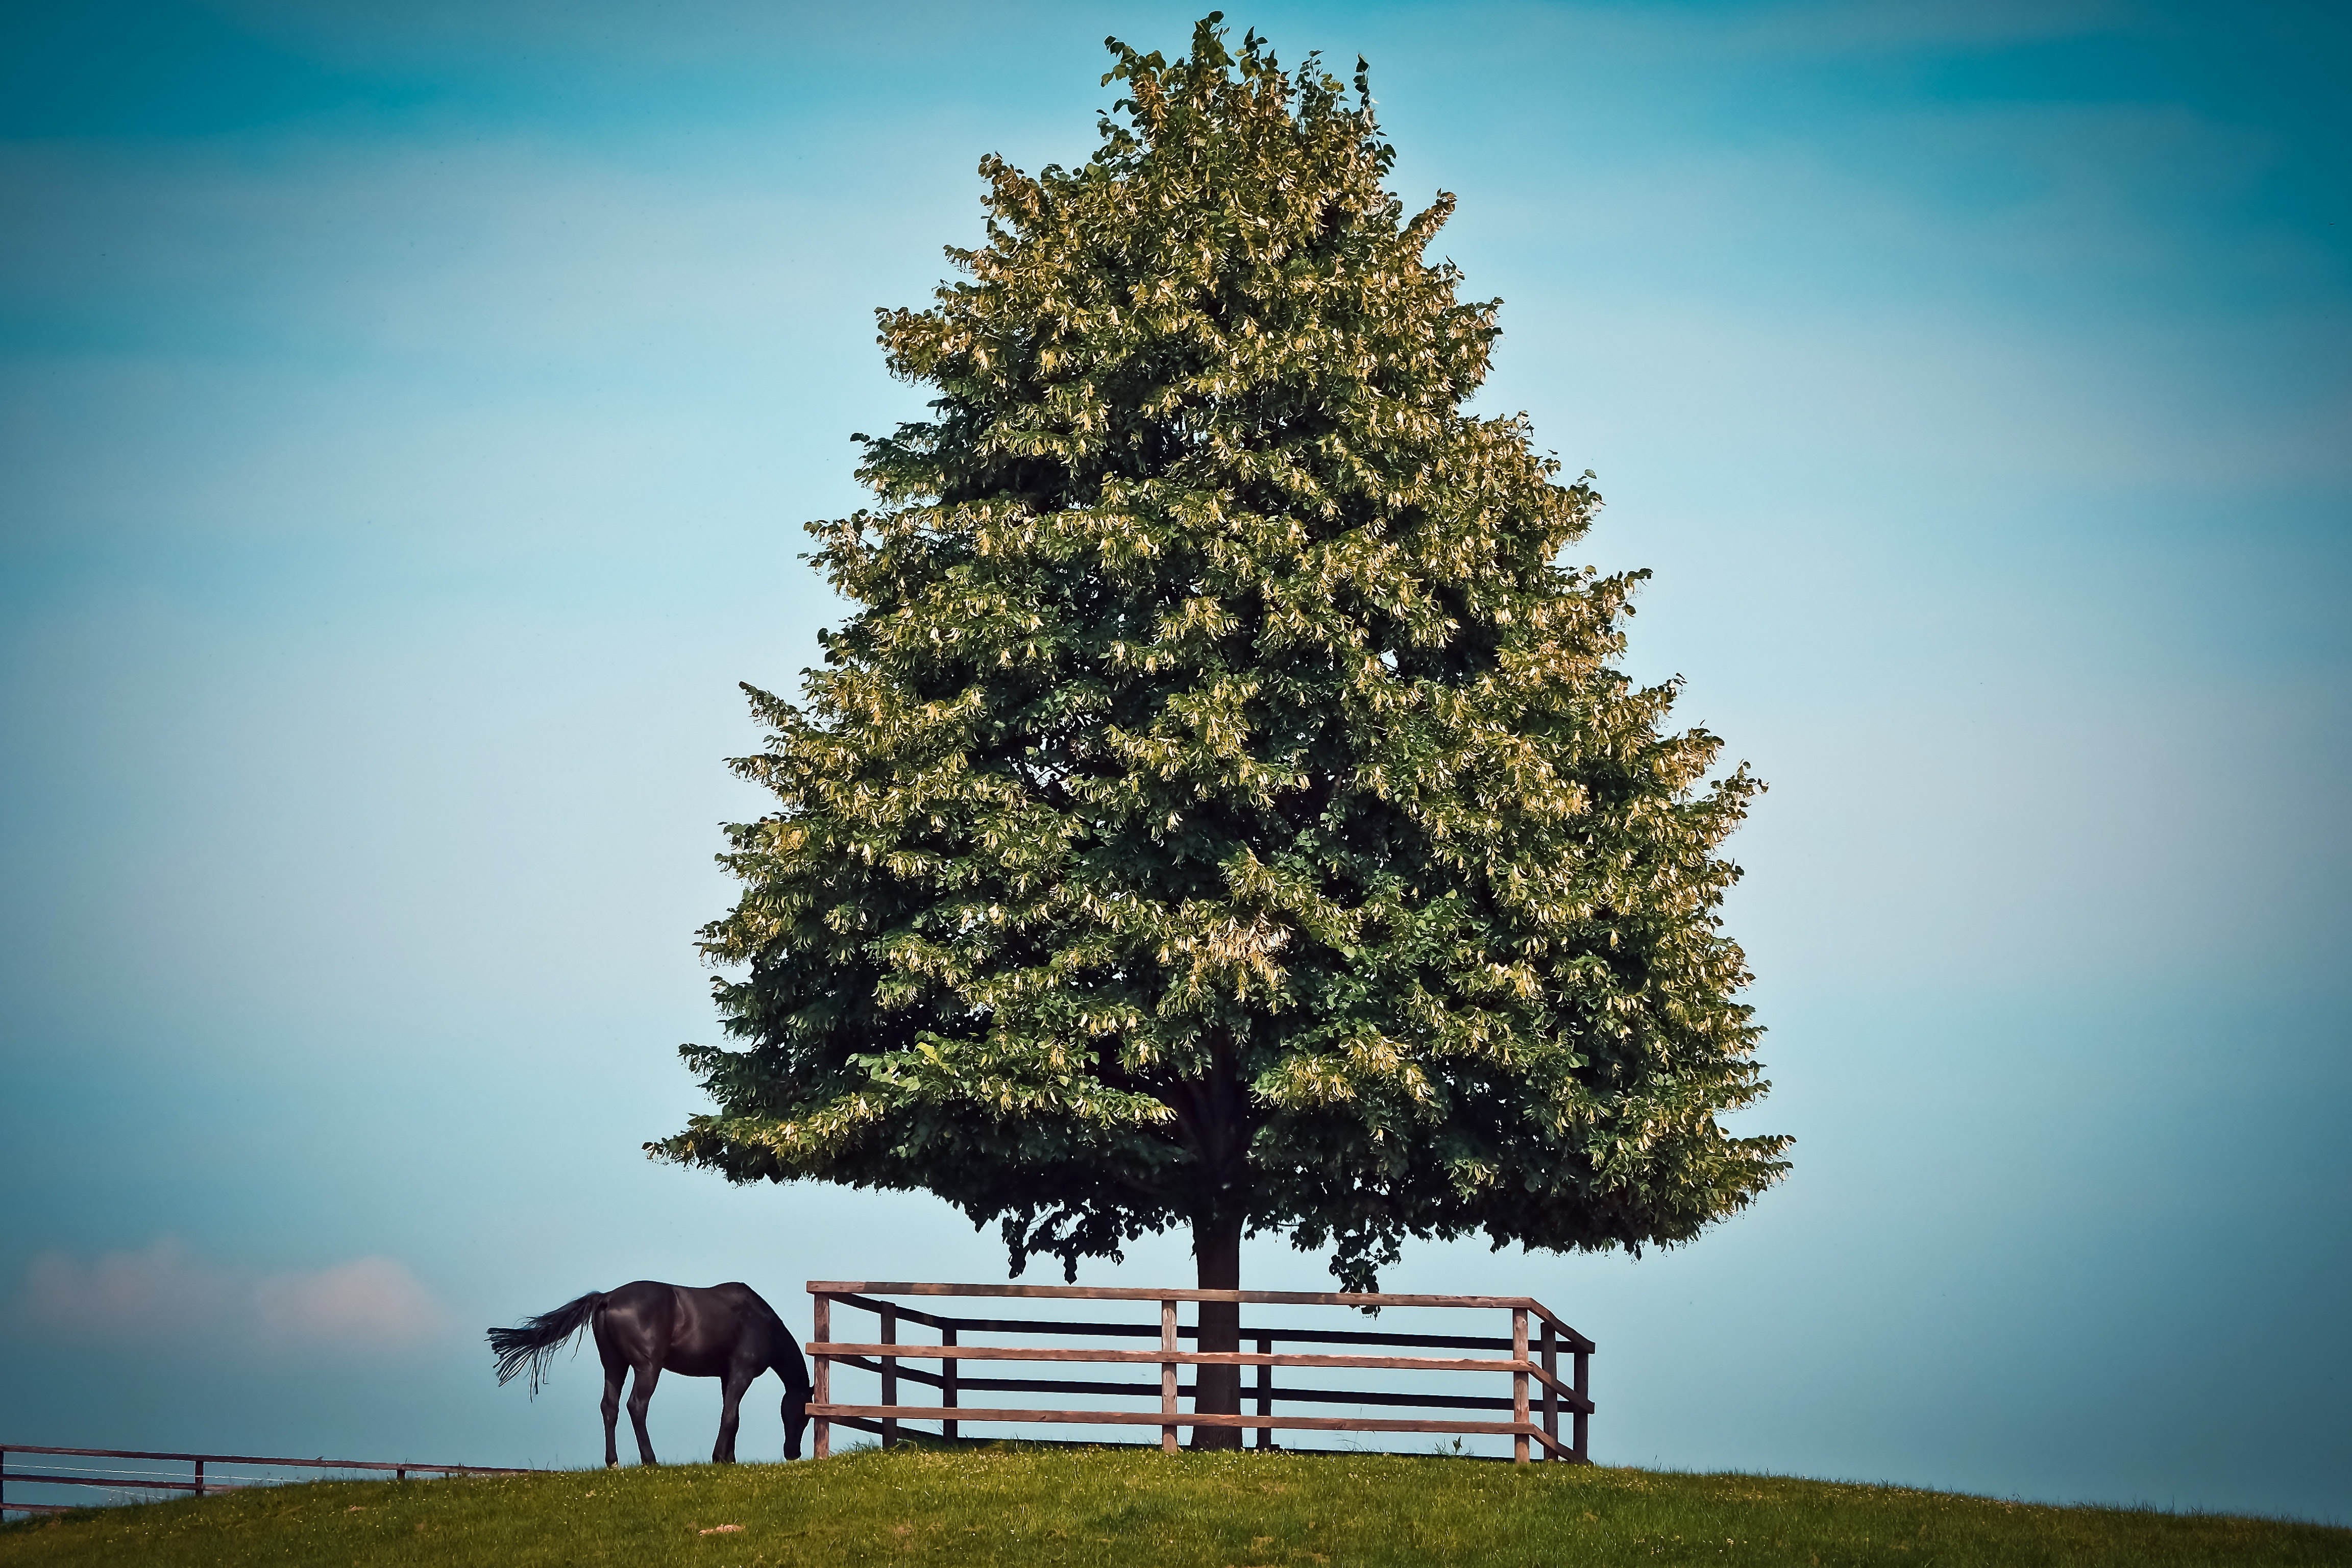 Black Horse Beside Green Leave Tree, Outdoors, Relax, Nature, Rural, HQ Photo